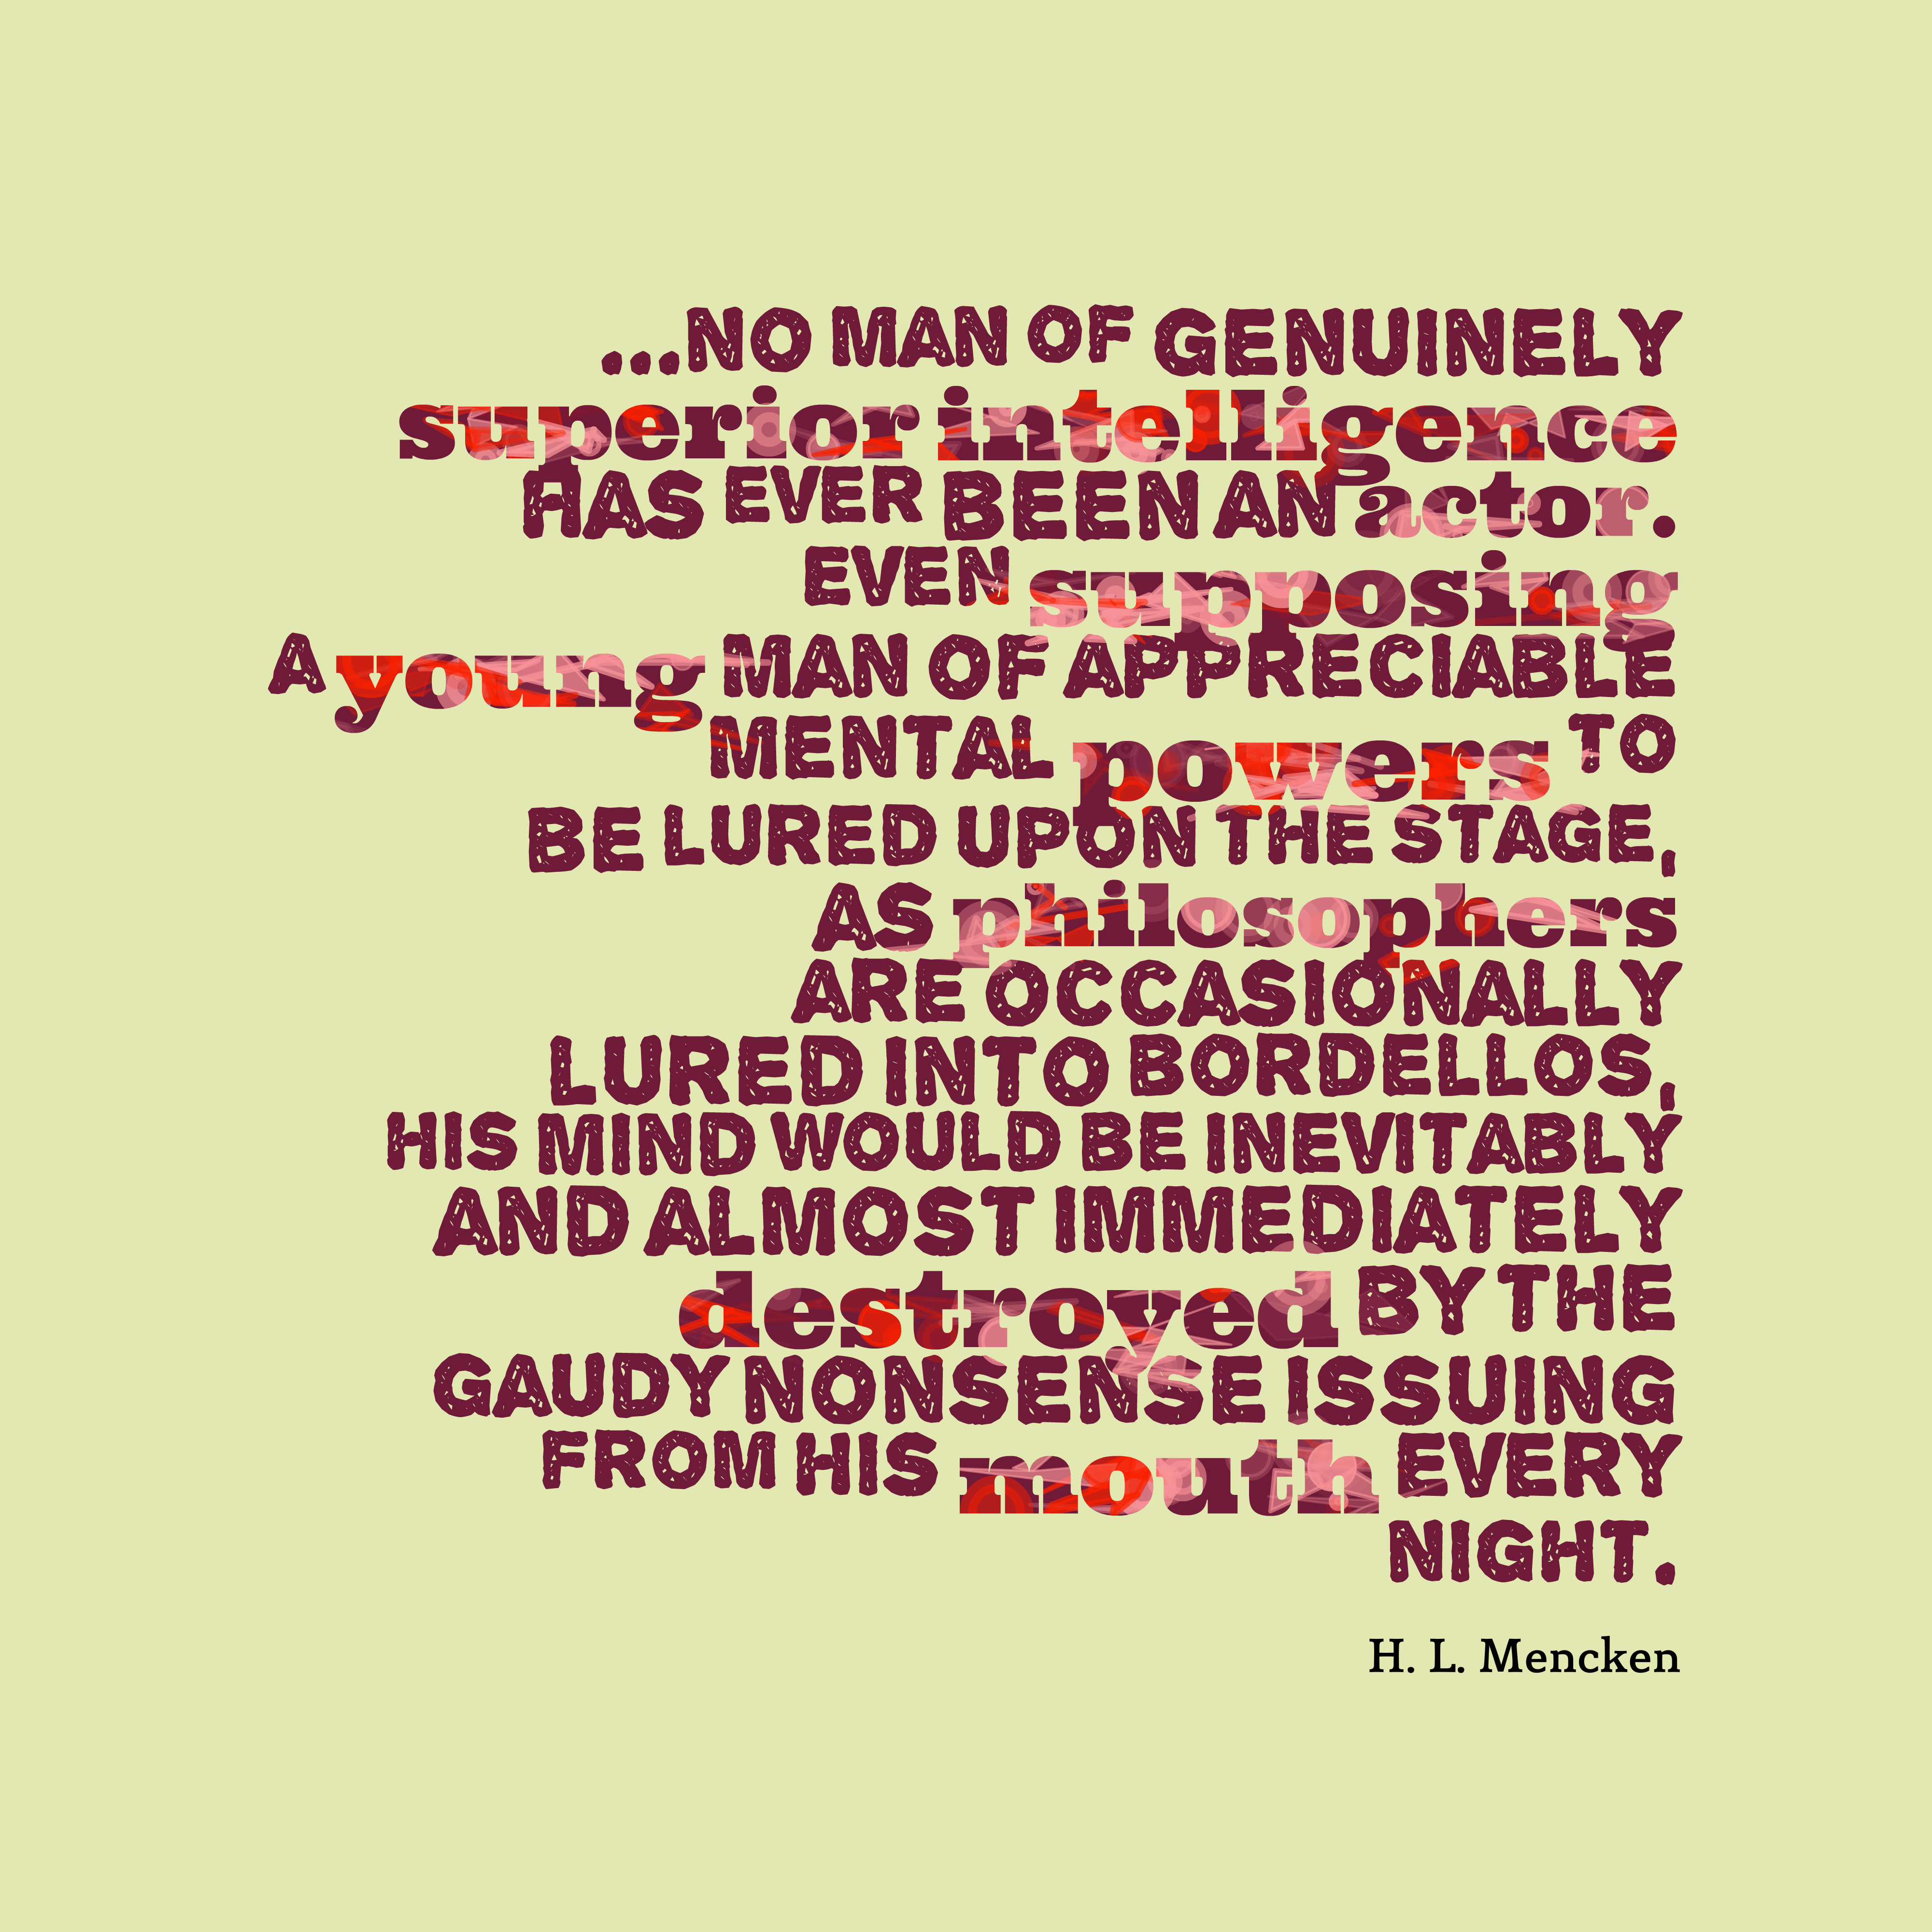 Quotes image of ...no man of genuinely superior intelligence has ever been an actor. Even supposing a young man of appreciable mental powers to be lured upon the stage, as philosophers are occasionally lured into bordellos, his mind would be inevitably and almost immediately destroyed by the gaudy nonsense issuing from his mouth every night.